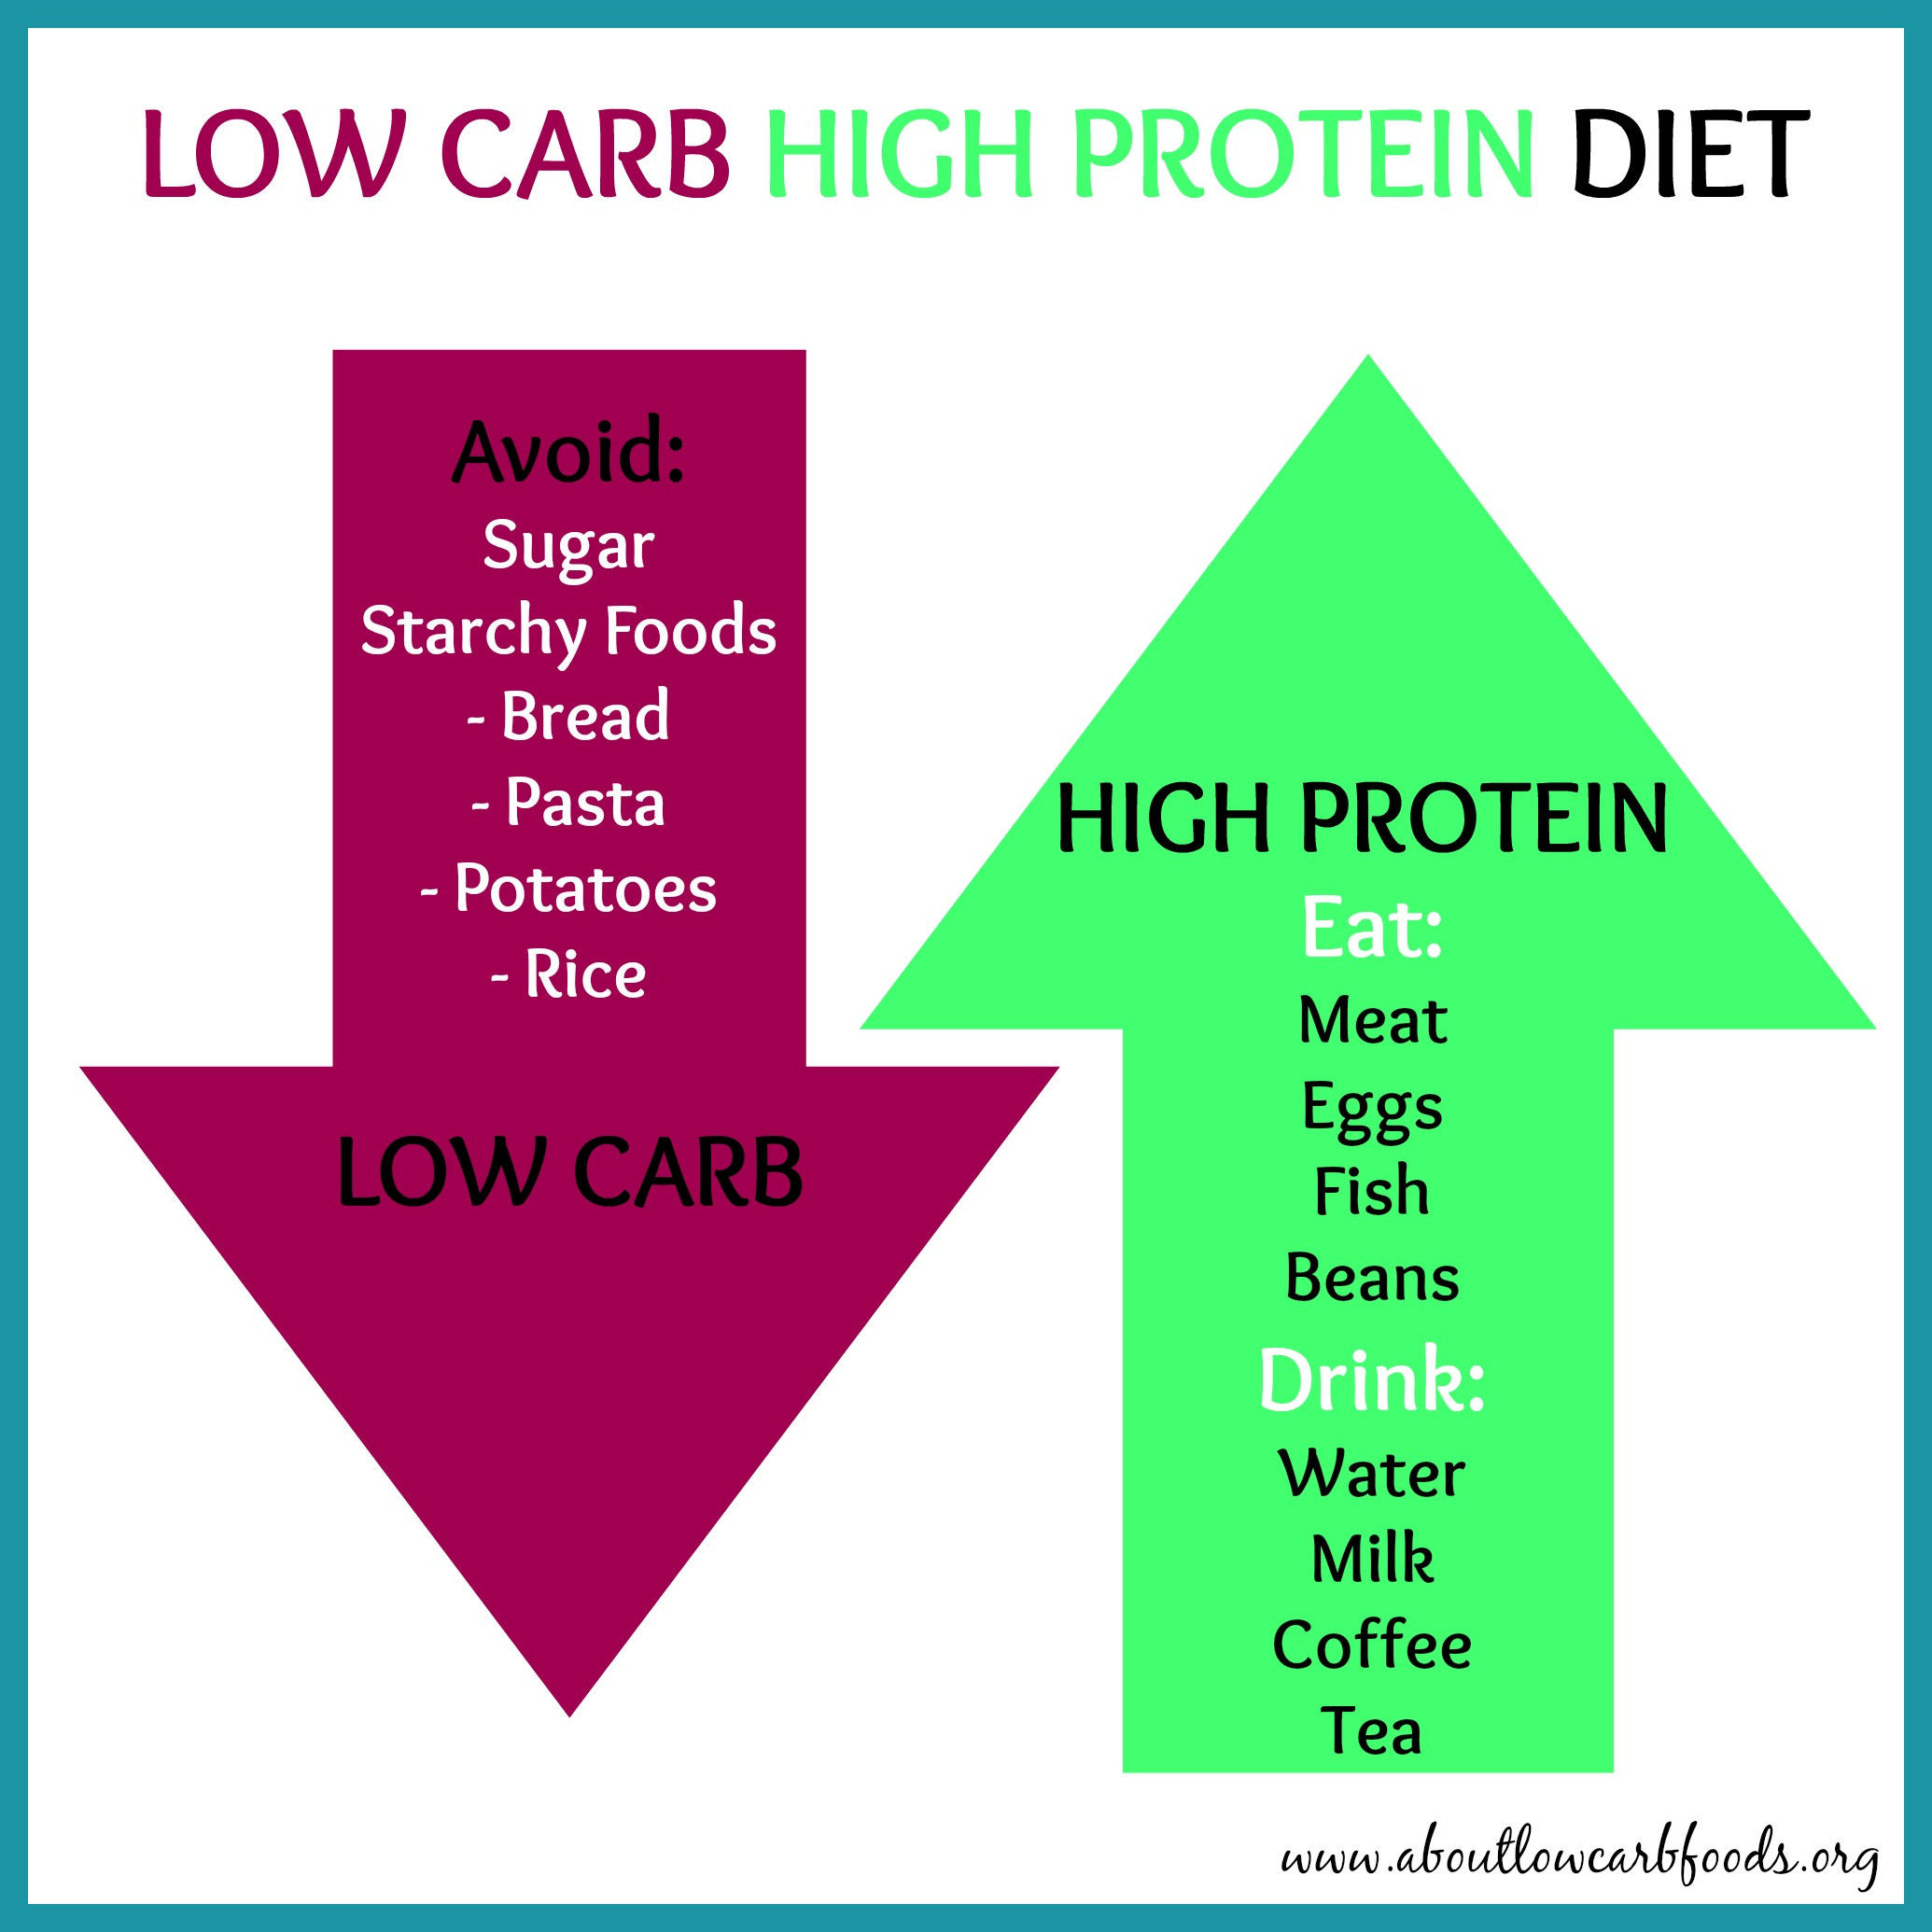 High Protein Low Carb Low Fat Diet  What Are The Effects of A Low Carb High Protein Diet An